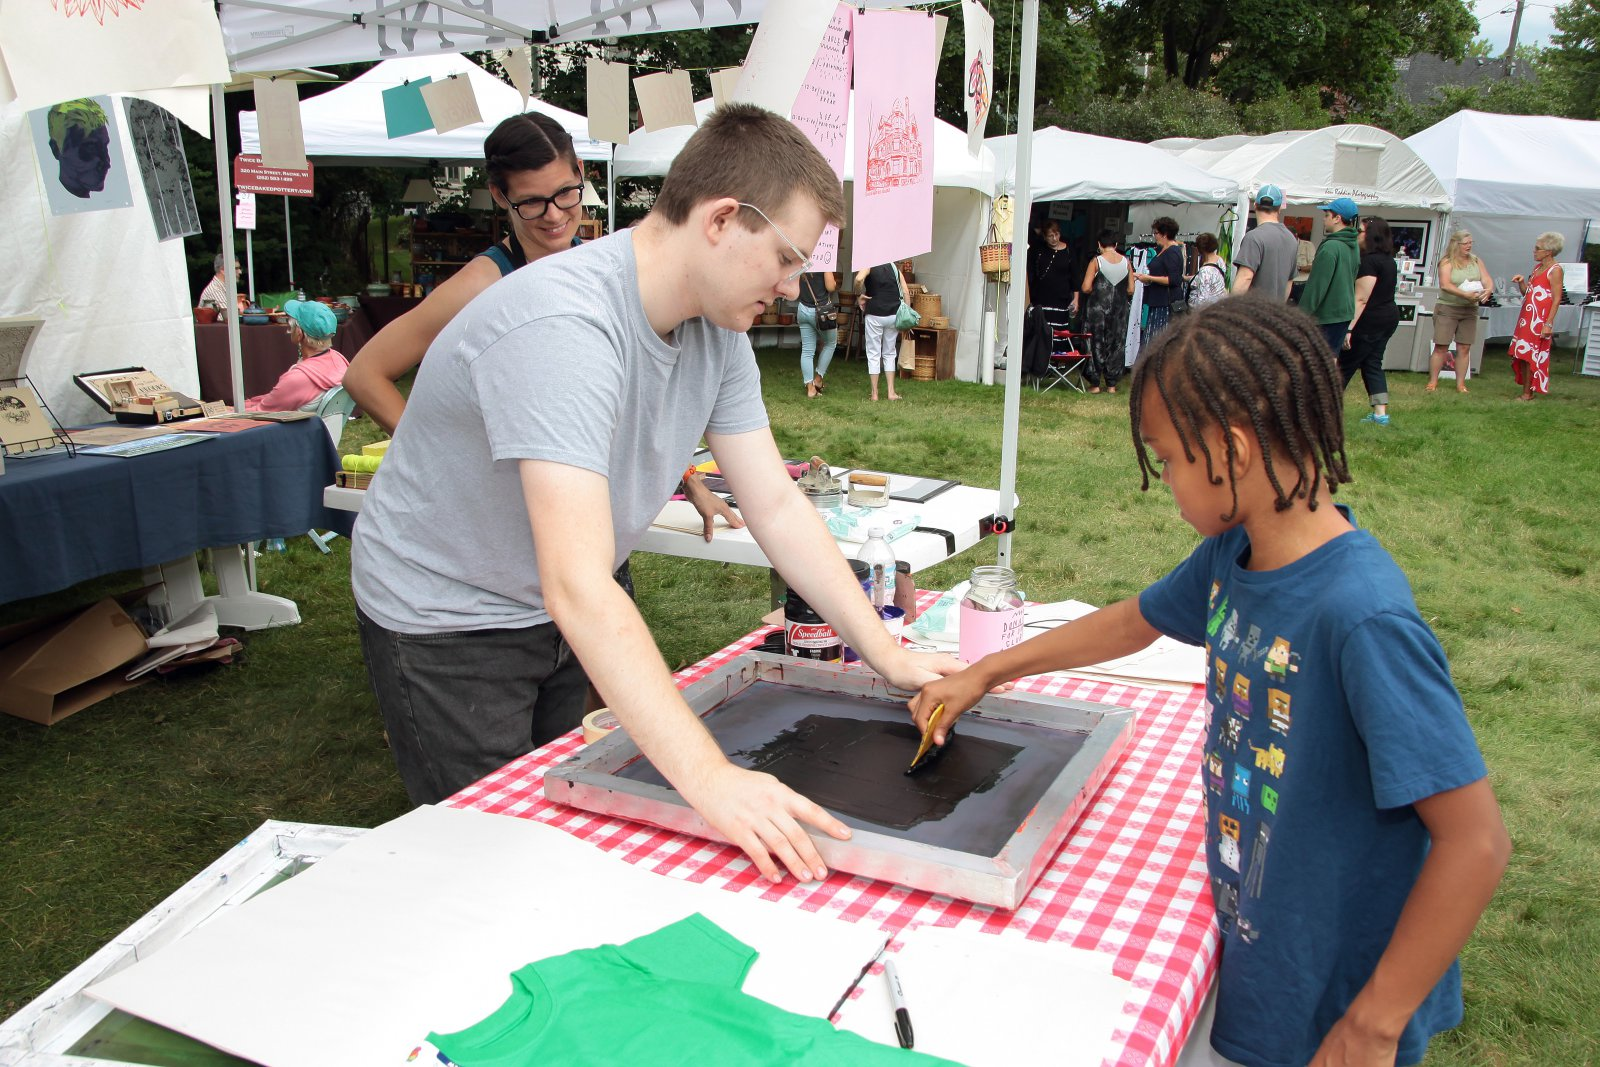 Ashia, from Wauwatosa, enjoyed the hands on print making demonstration by the UWM Print Narrative Forms Club at the Firefly Art Fair children\'s area